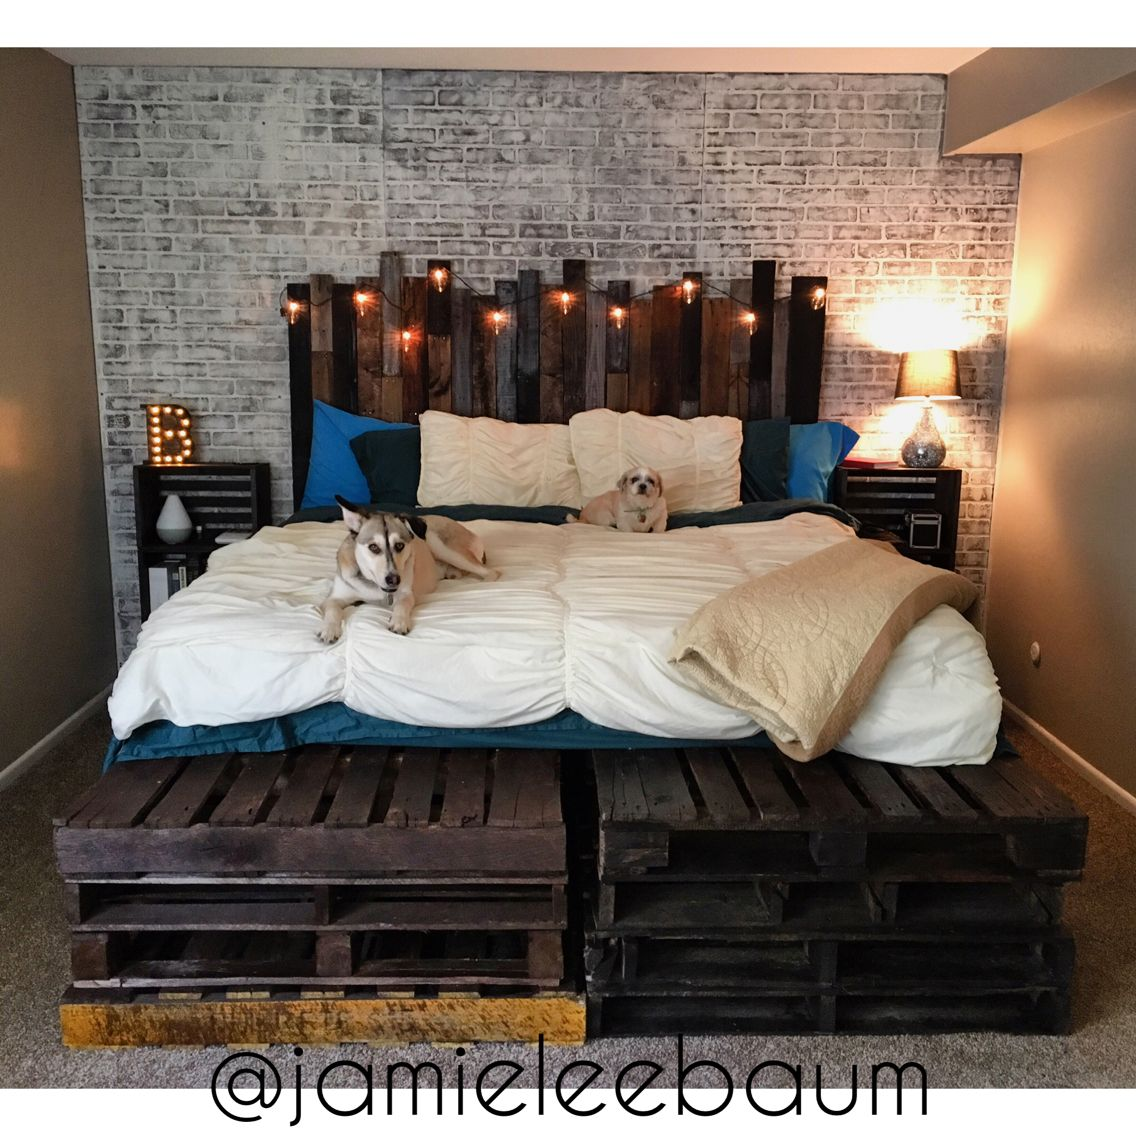 King Size Pallet Bed And Headboard Diy Rustic Industrial